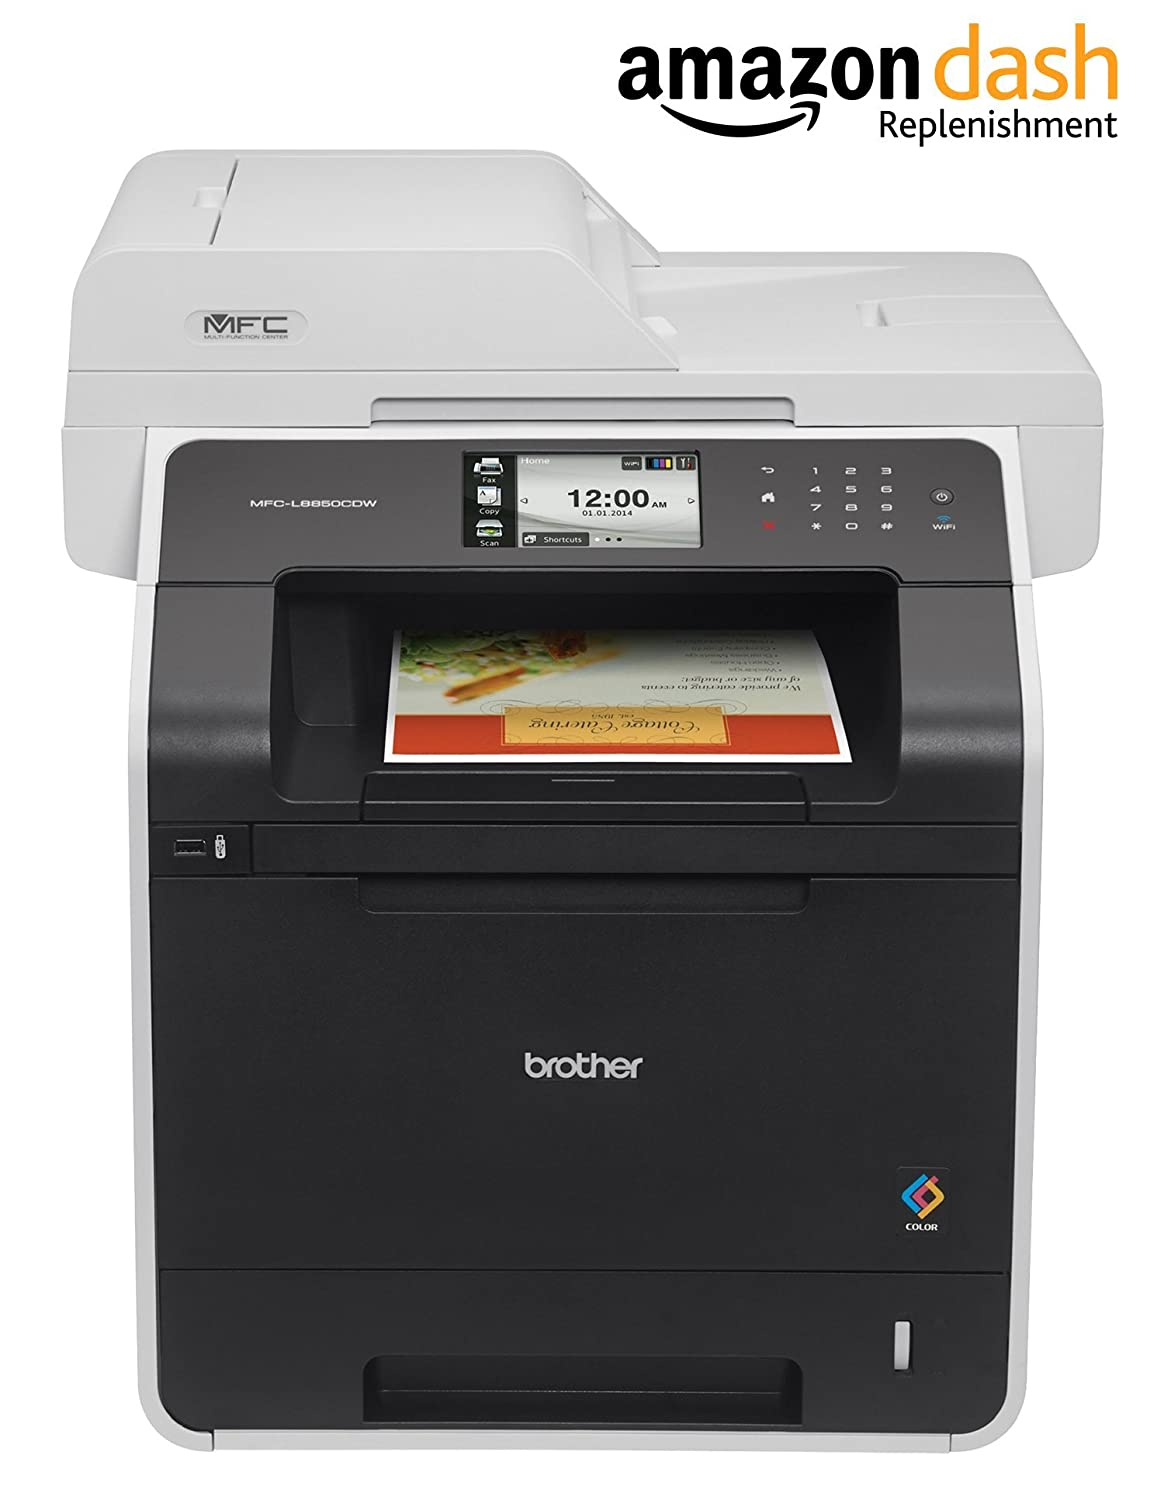 Amazon.com: Brother Printer MFC-L8850CDW Wireless Color Laser ...